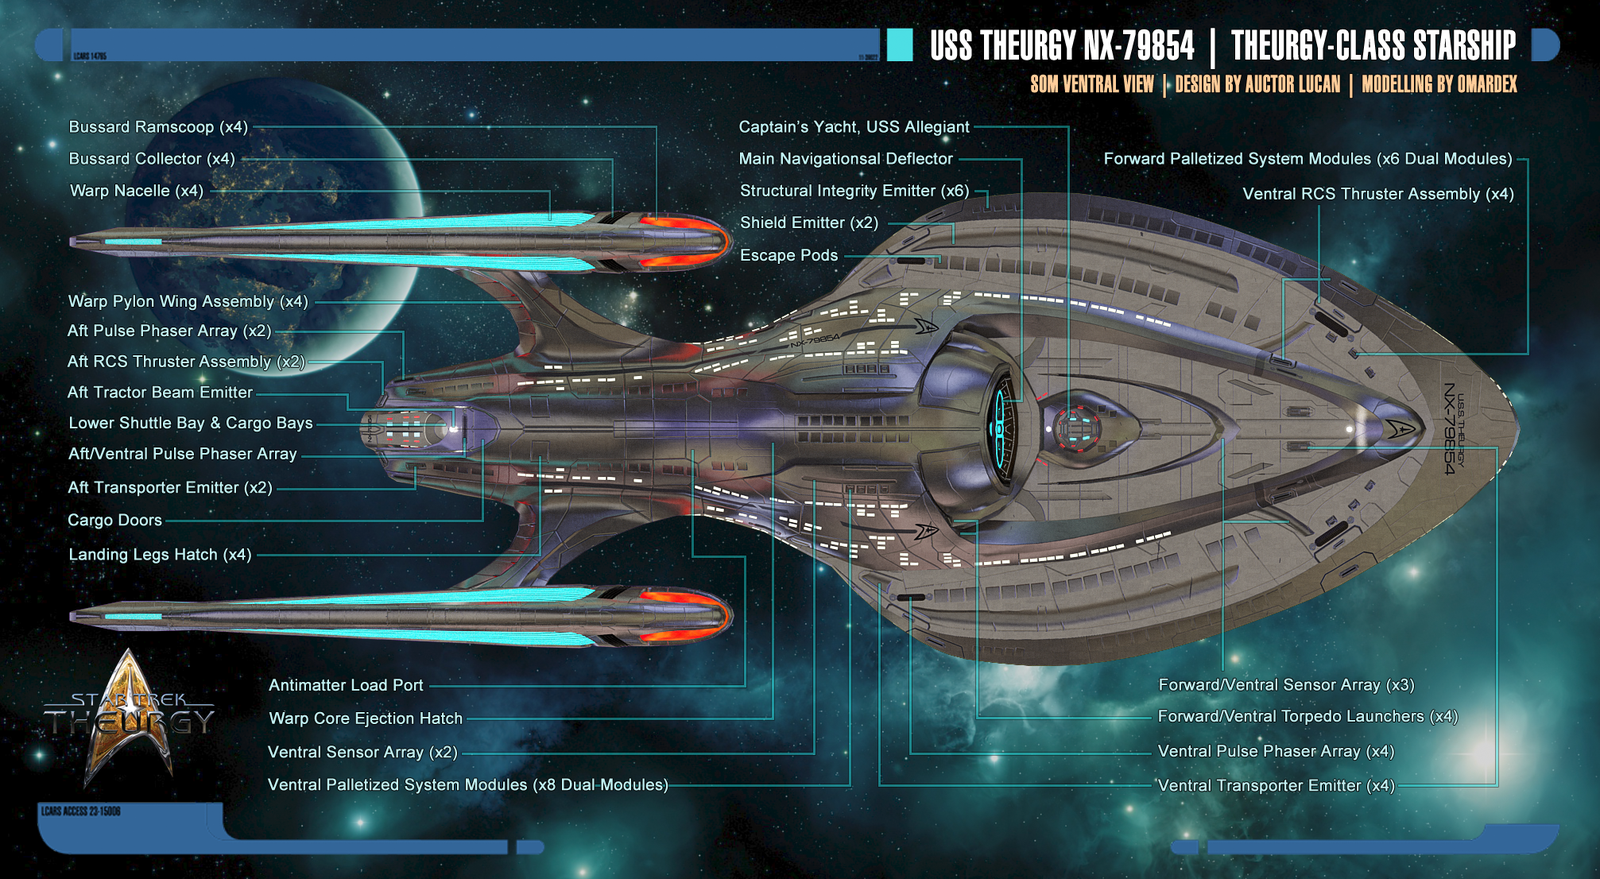 Excalibur Suite Floor Plan Theurgy Class Starship Schematics Ventral View By Auctor